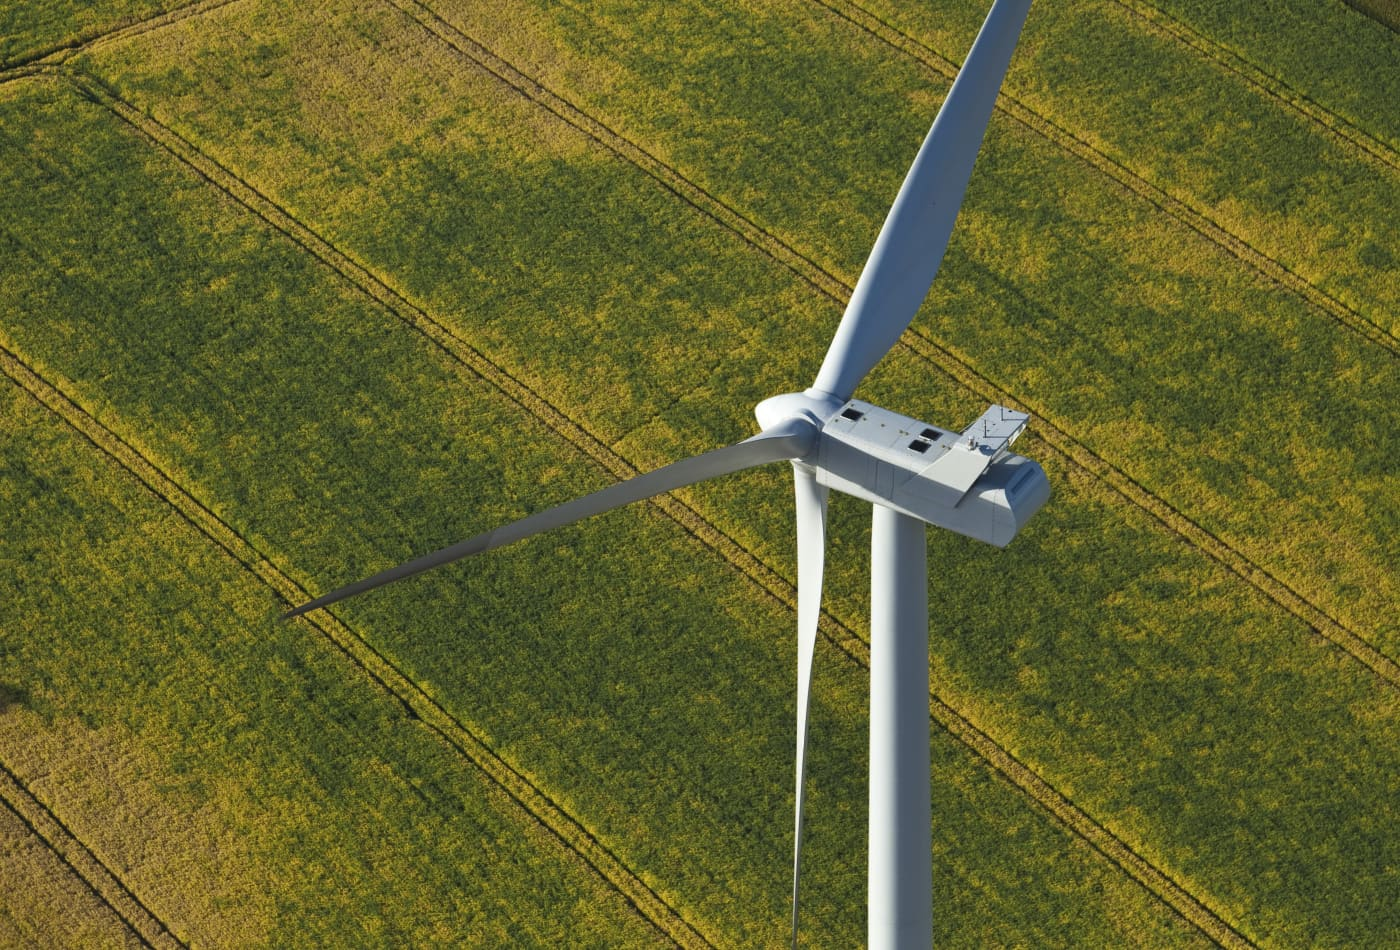 Shares of wind turbine giant Vestas rip higher as order book hits fresh record